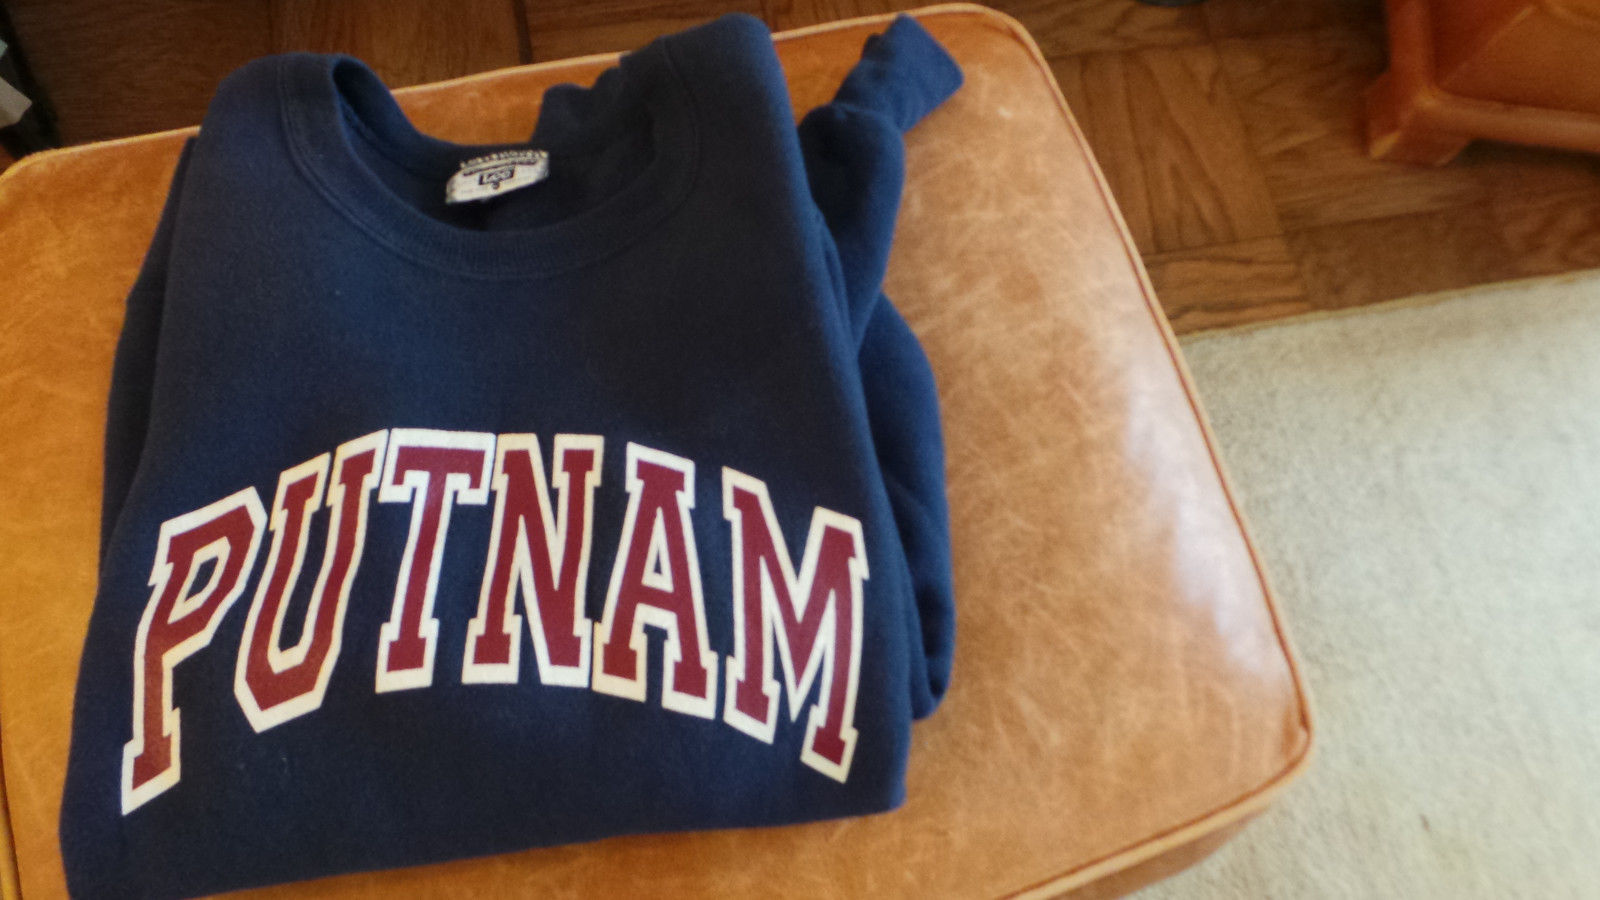 Putnam Sweatshirt in Navy Color w Bold Letters Size XL Made in USA by Lee VG+ image 6